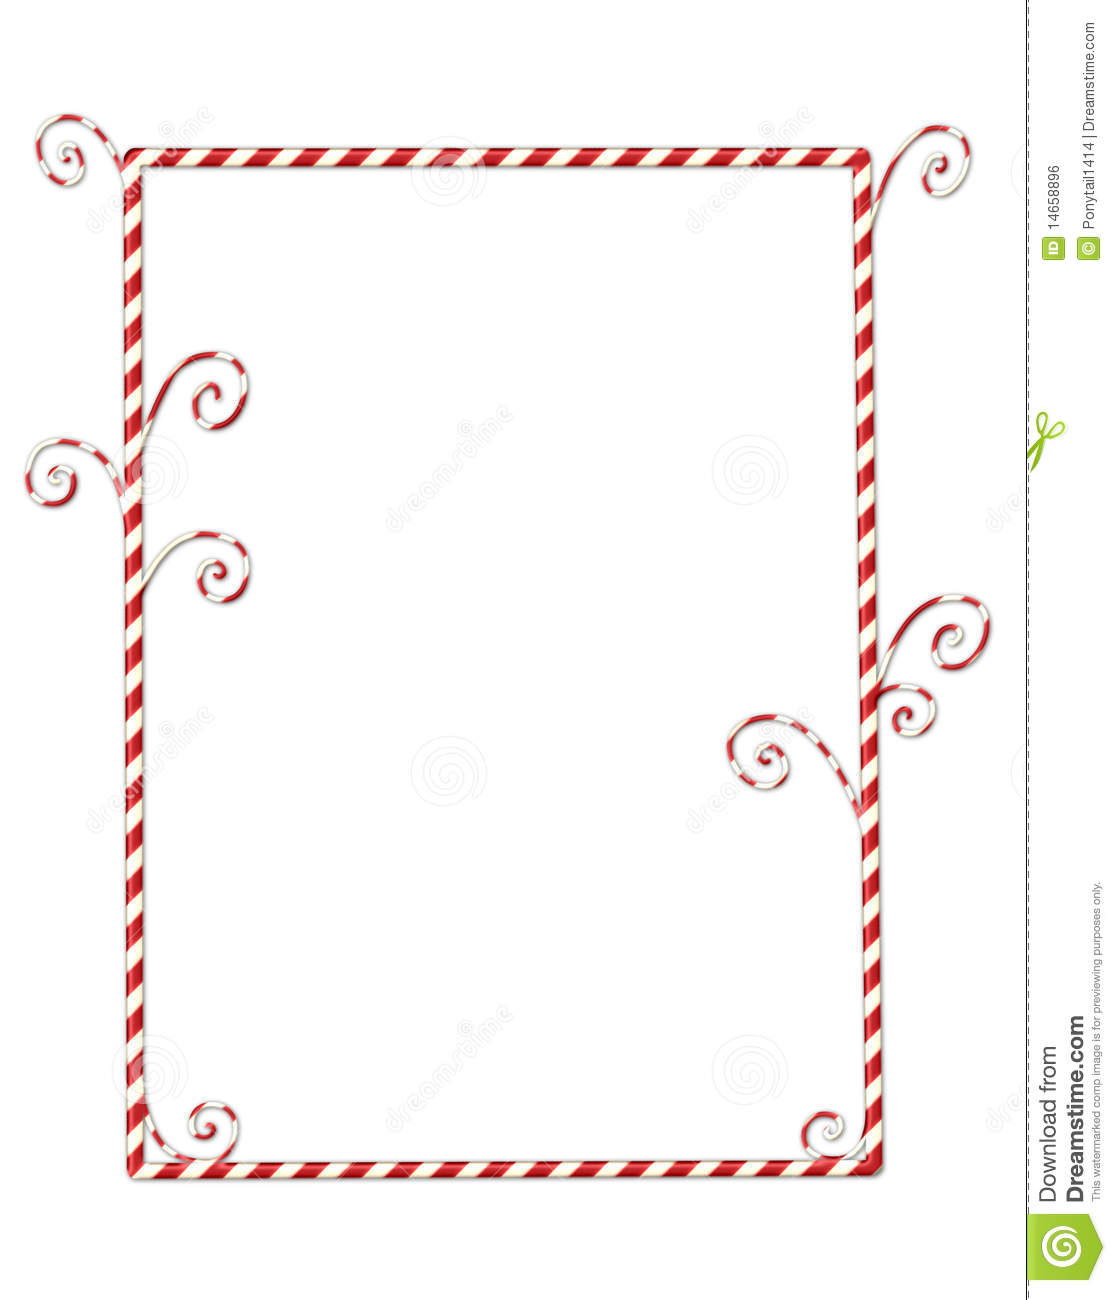 hight resolution of candy cane border clip art bl candy cane border clip art free